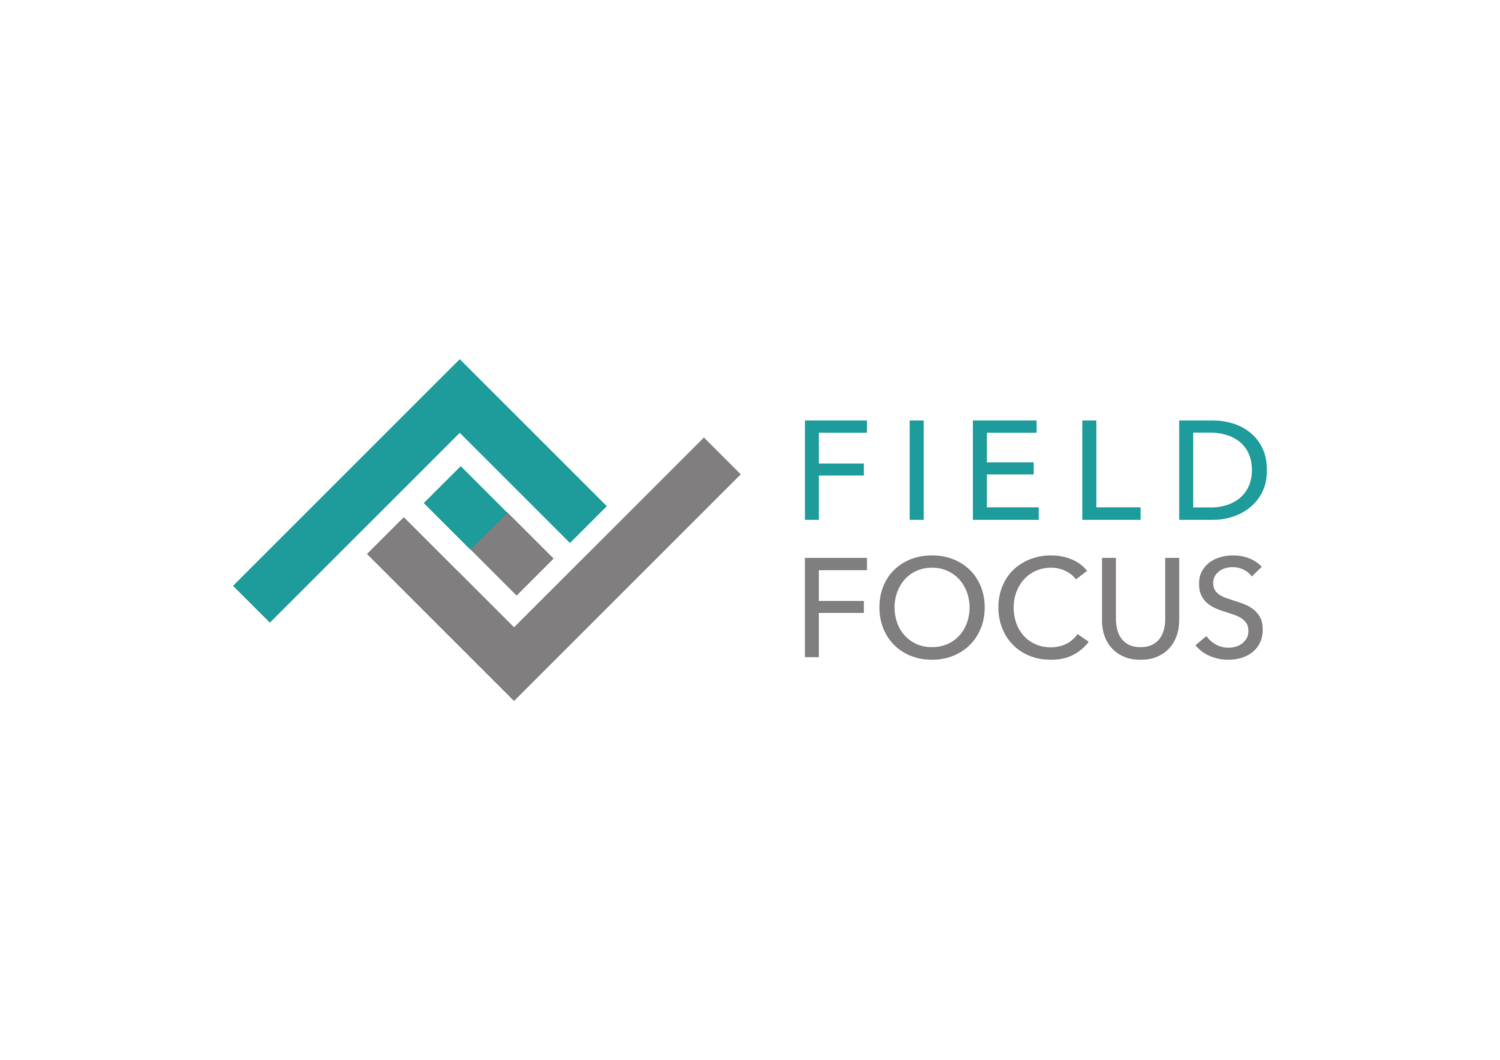 Field Focus LLC